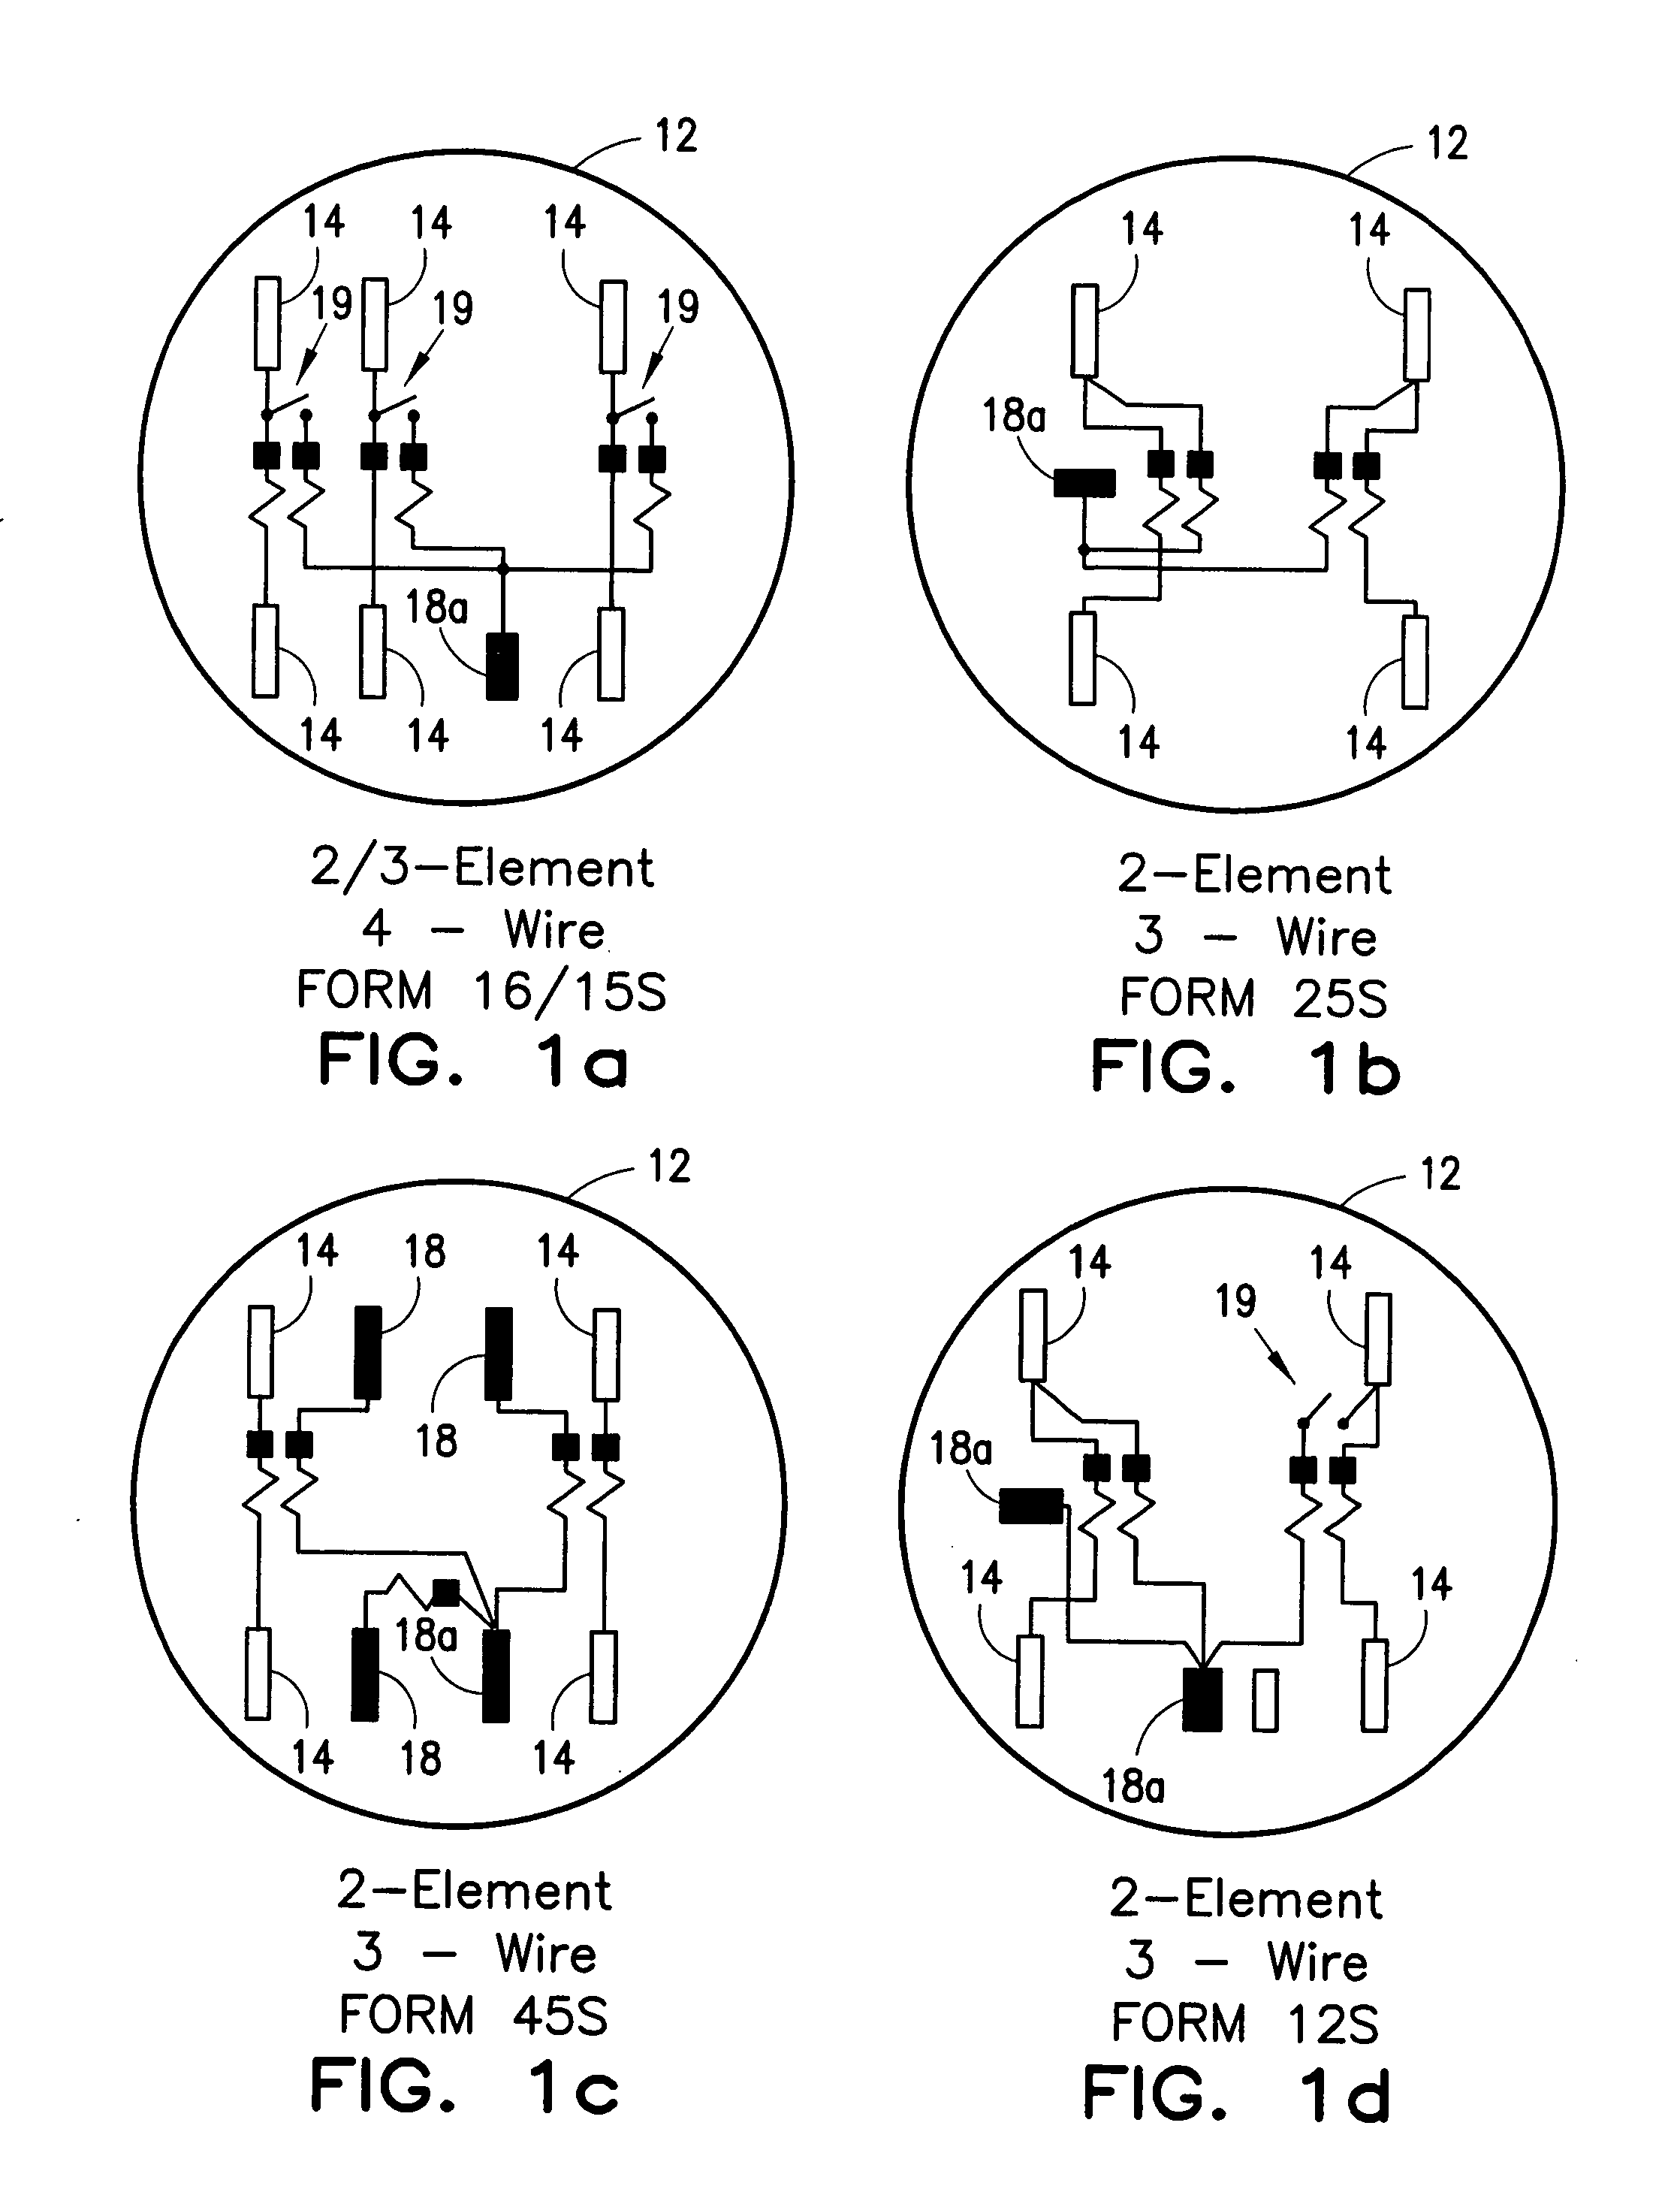 Meter Pedestal Wiring Diagrams Diagram Unique 4 Wire Base Sketch Ideas Awesome Illustration